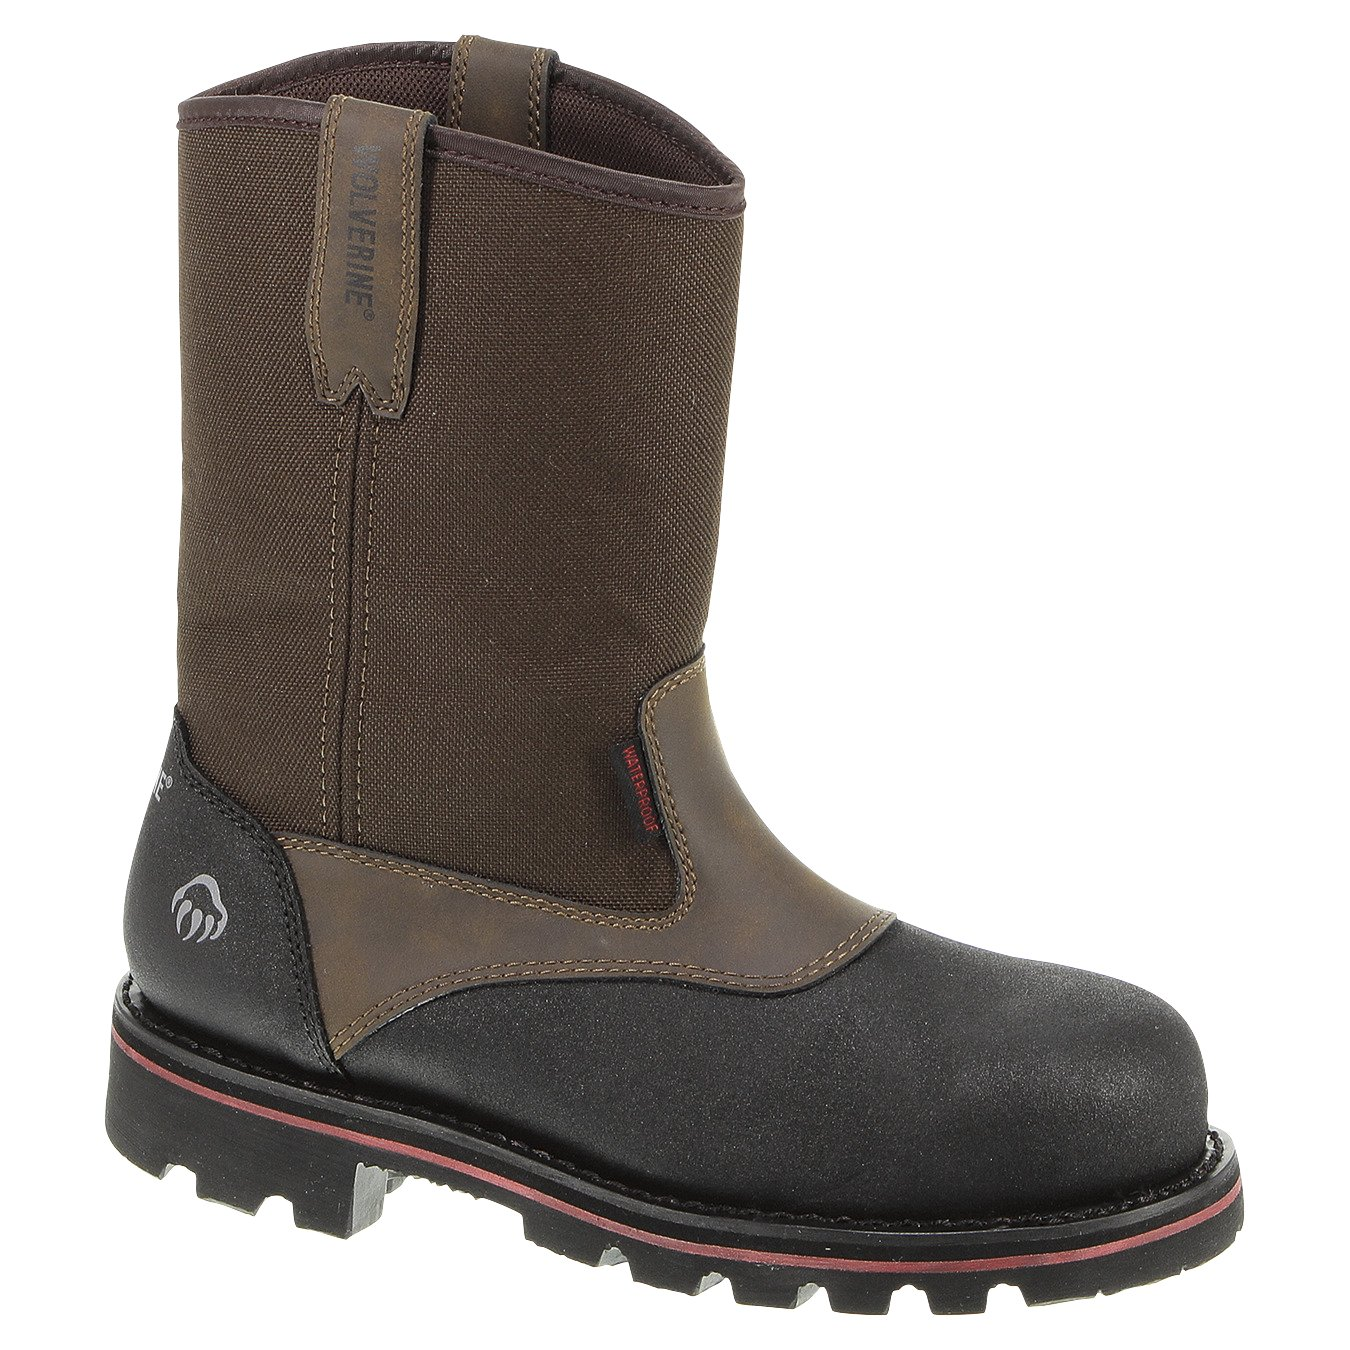 4a9aa95a817 Wolverine Men's Drillbit Oil Rigger EH Composite Toe Wellington Work Boots